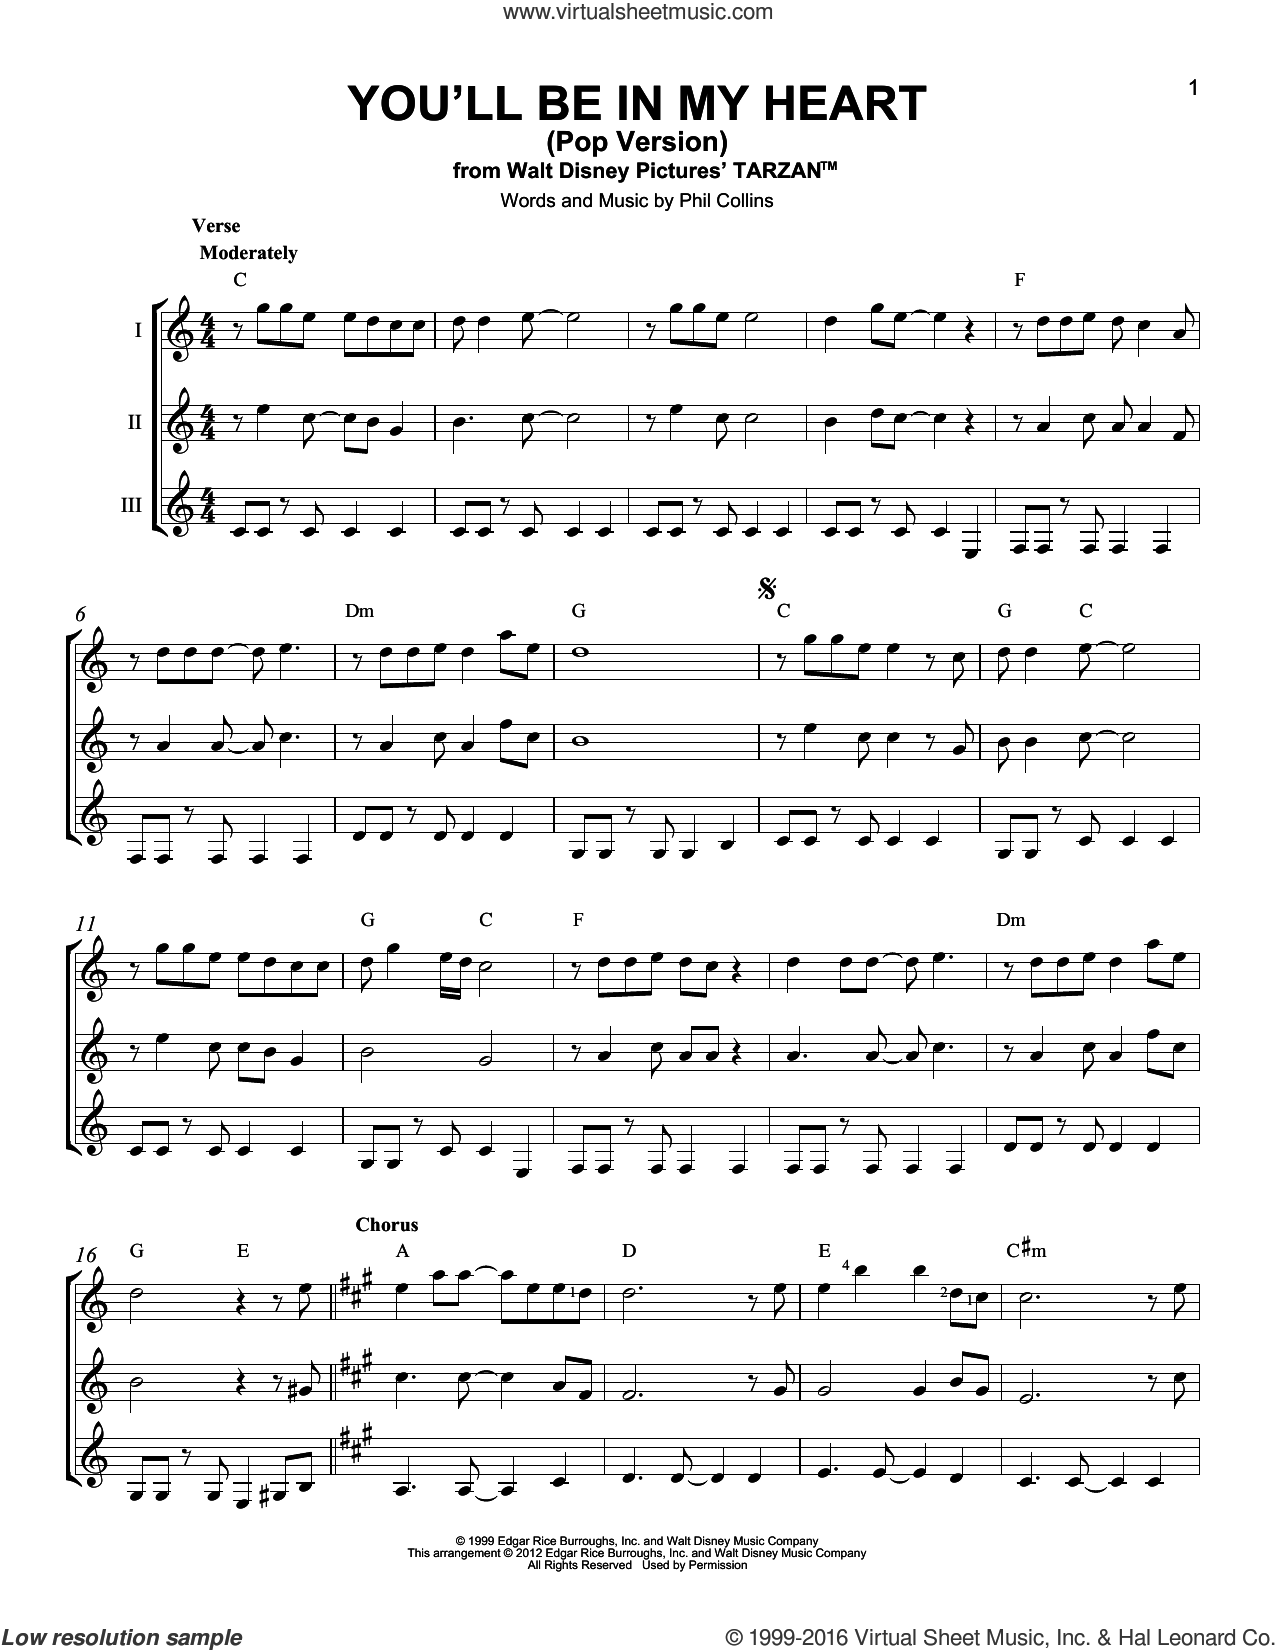 You'll Be In My Heart (Pop Version) sheet music for guitar ensemble by Phil Collins, intermediate. Score Image Preview.